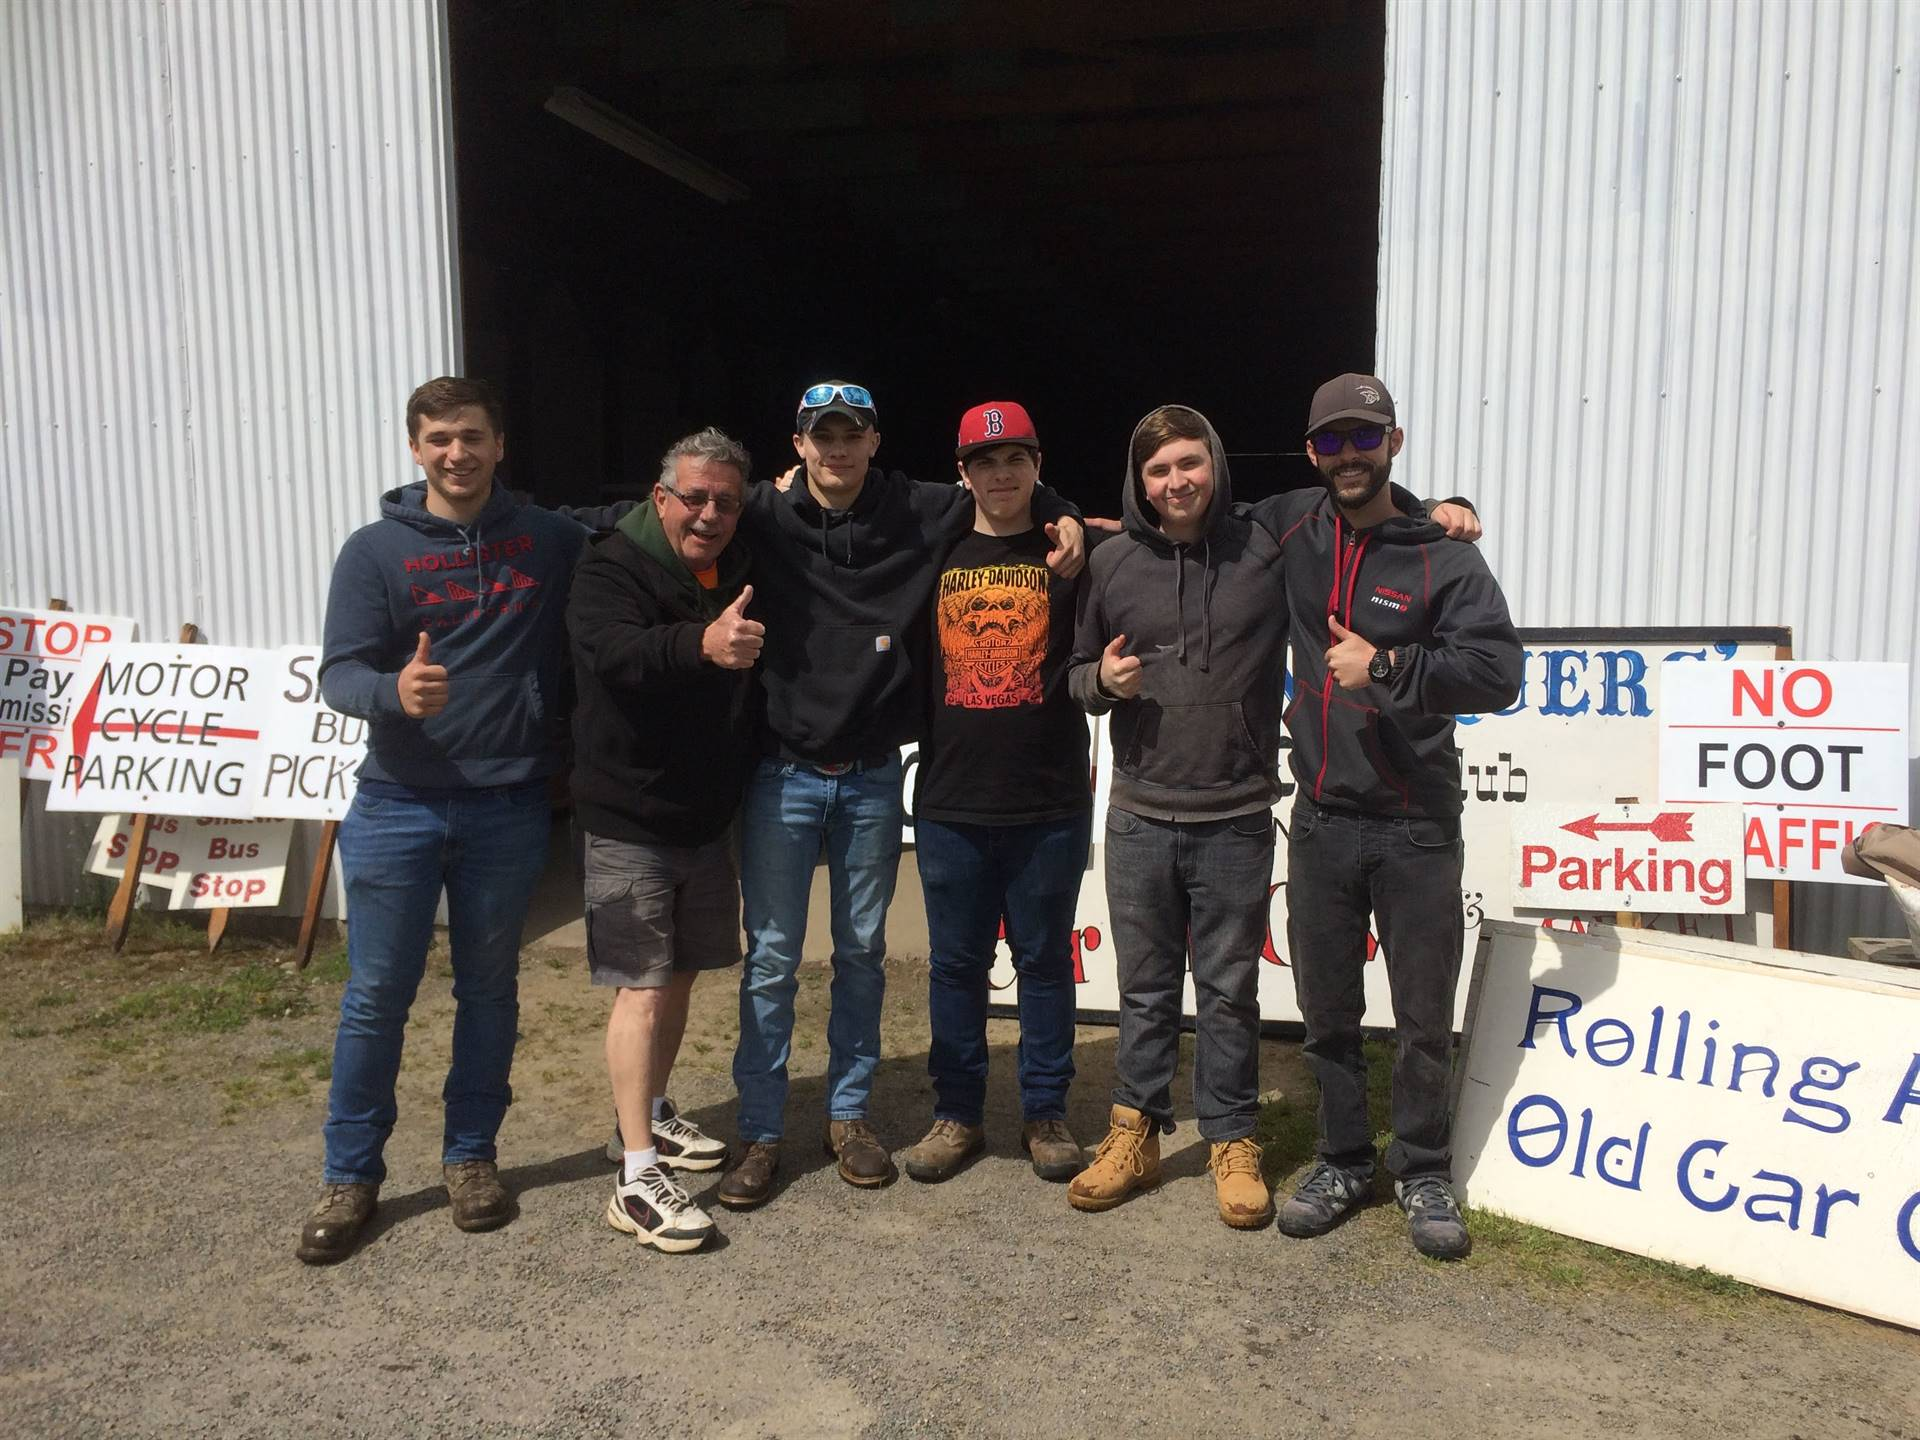 students at rolling old car antiques work experience